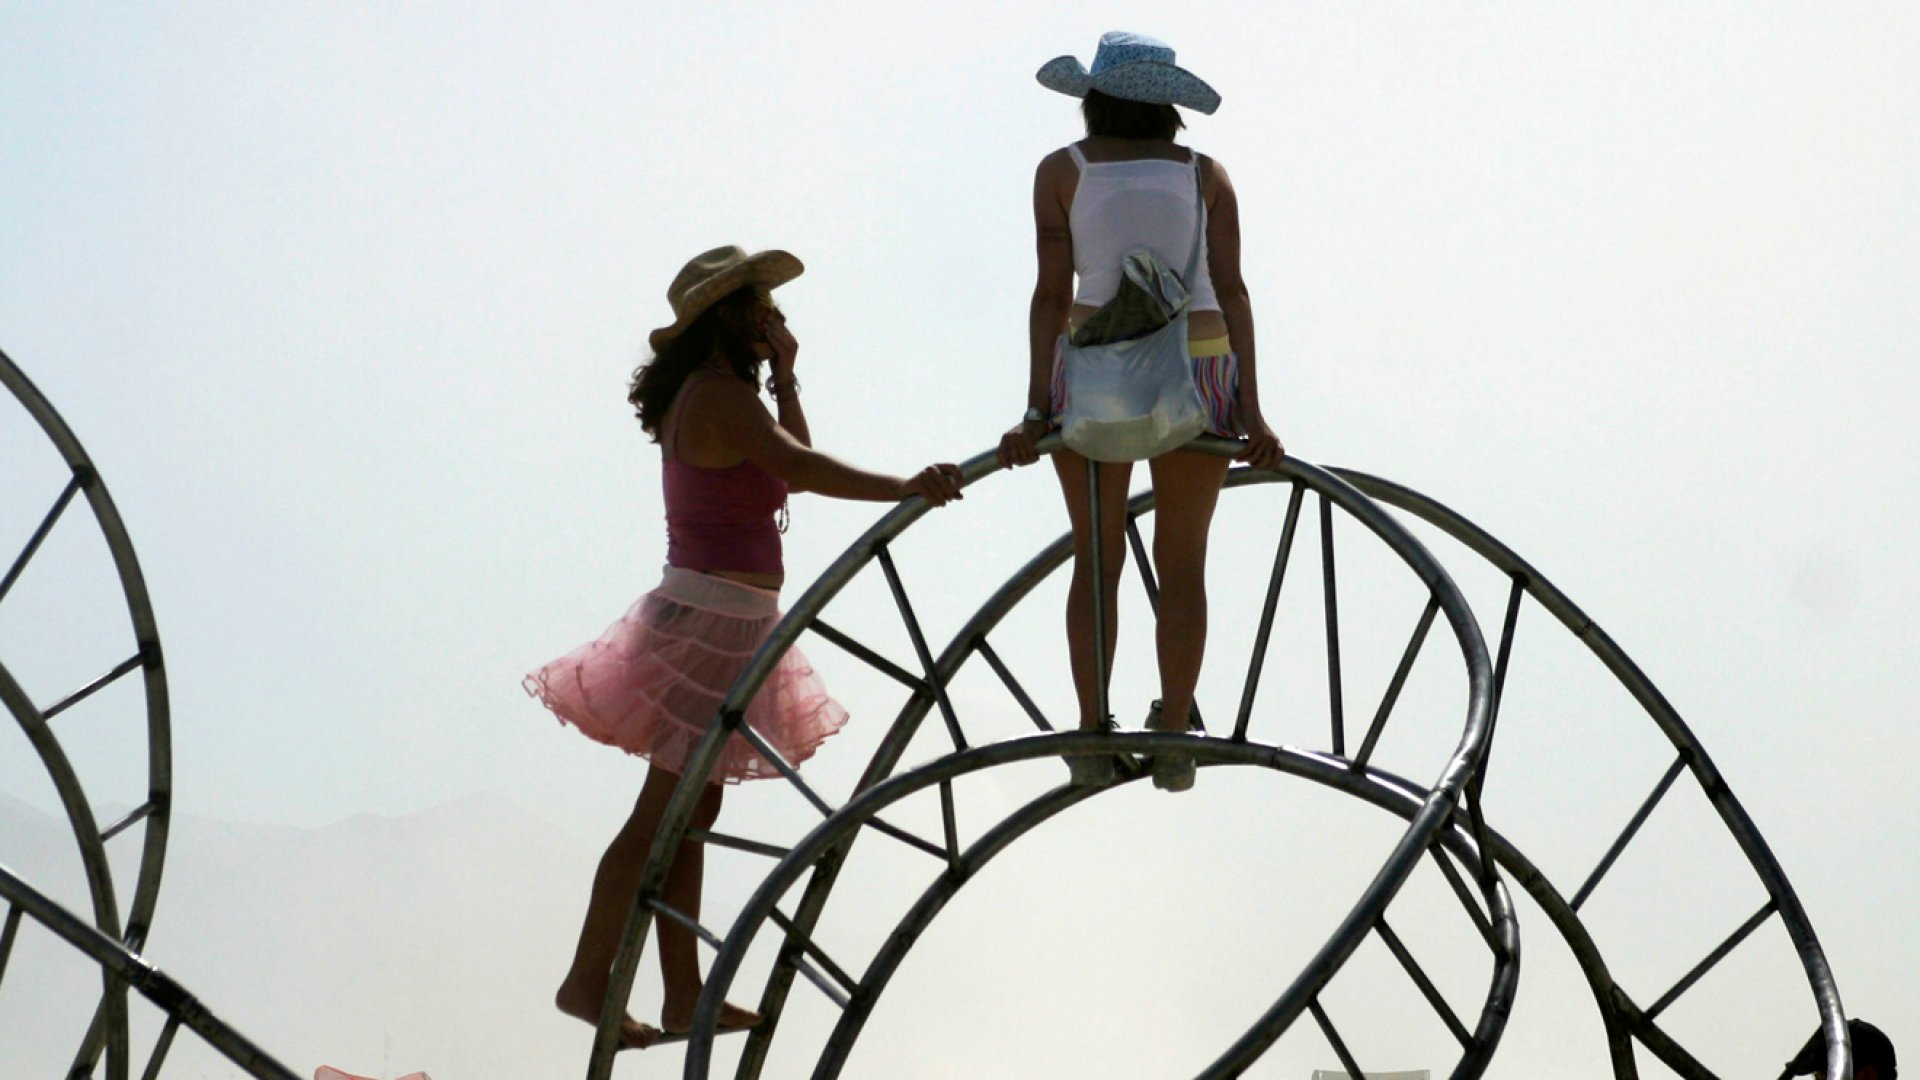 Two Burning Man attendees, possibly learning some leadership skills.